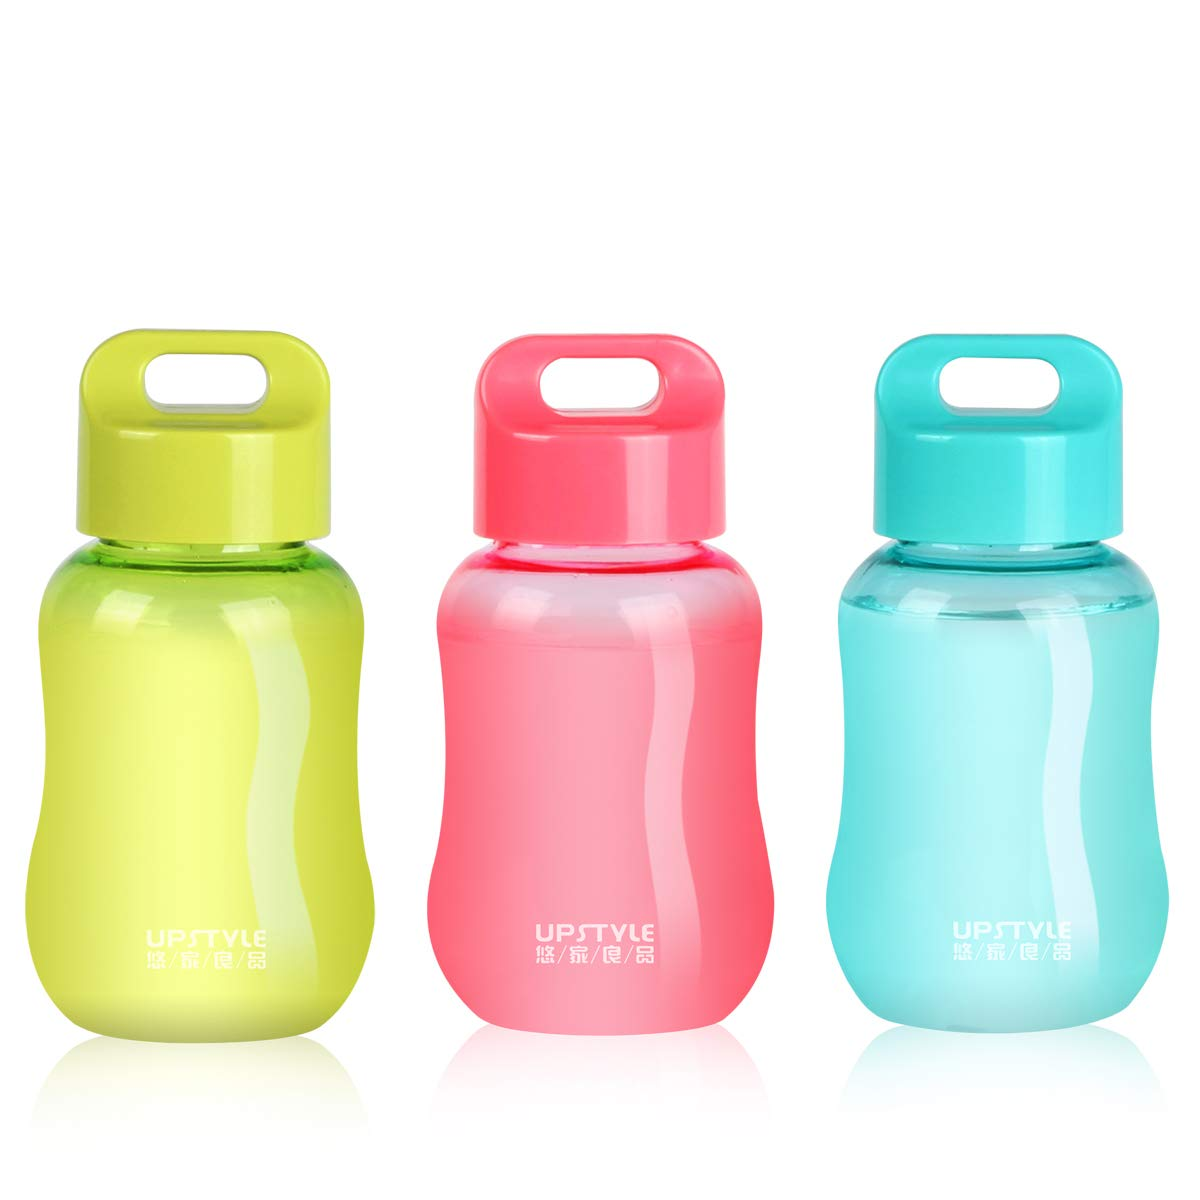 UPSTYLE Mini Plastic Coffee Travel Mugs Water Bottle Sports Water Bottle Cup for Milk, Coffee, Tea, Juice Size 180ml (6oz), Pack of 3